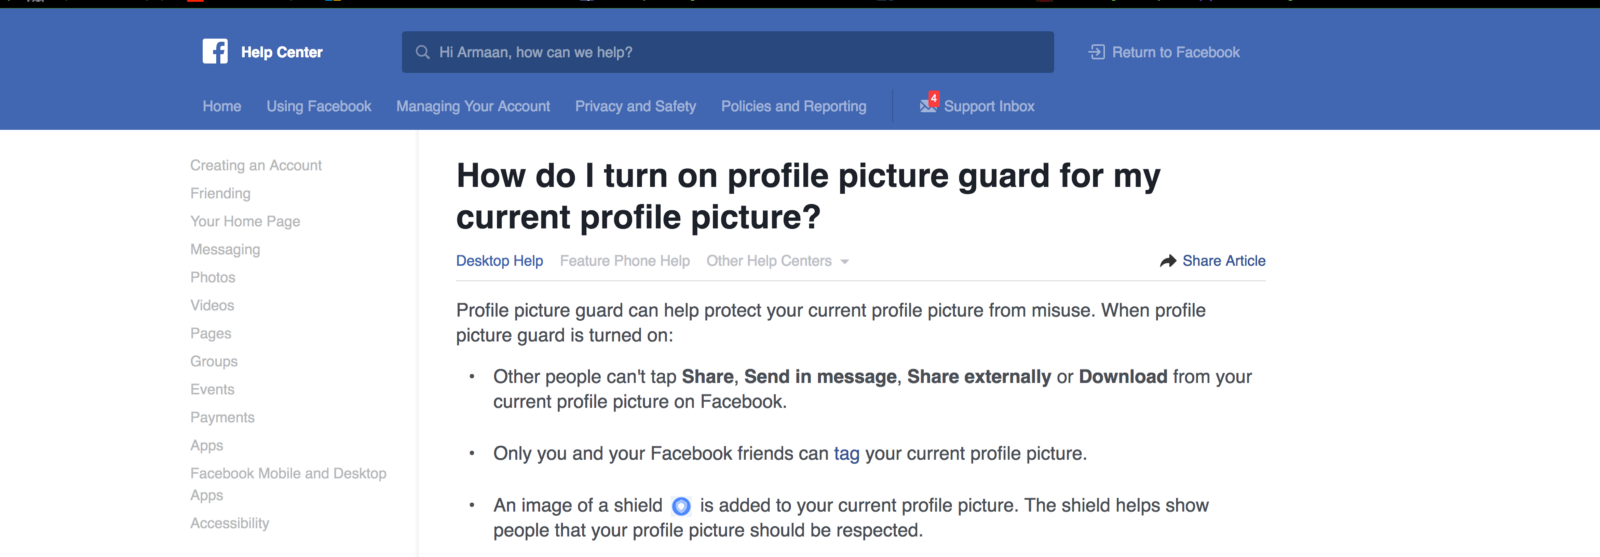 Bypassing Facebook Profile Picture Guard Security  - By